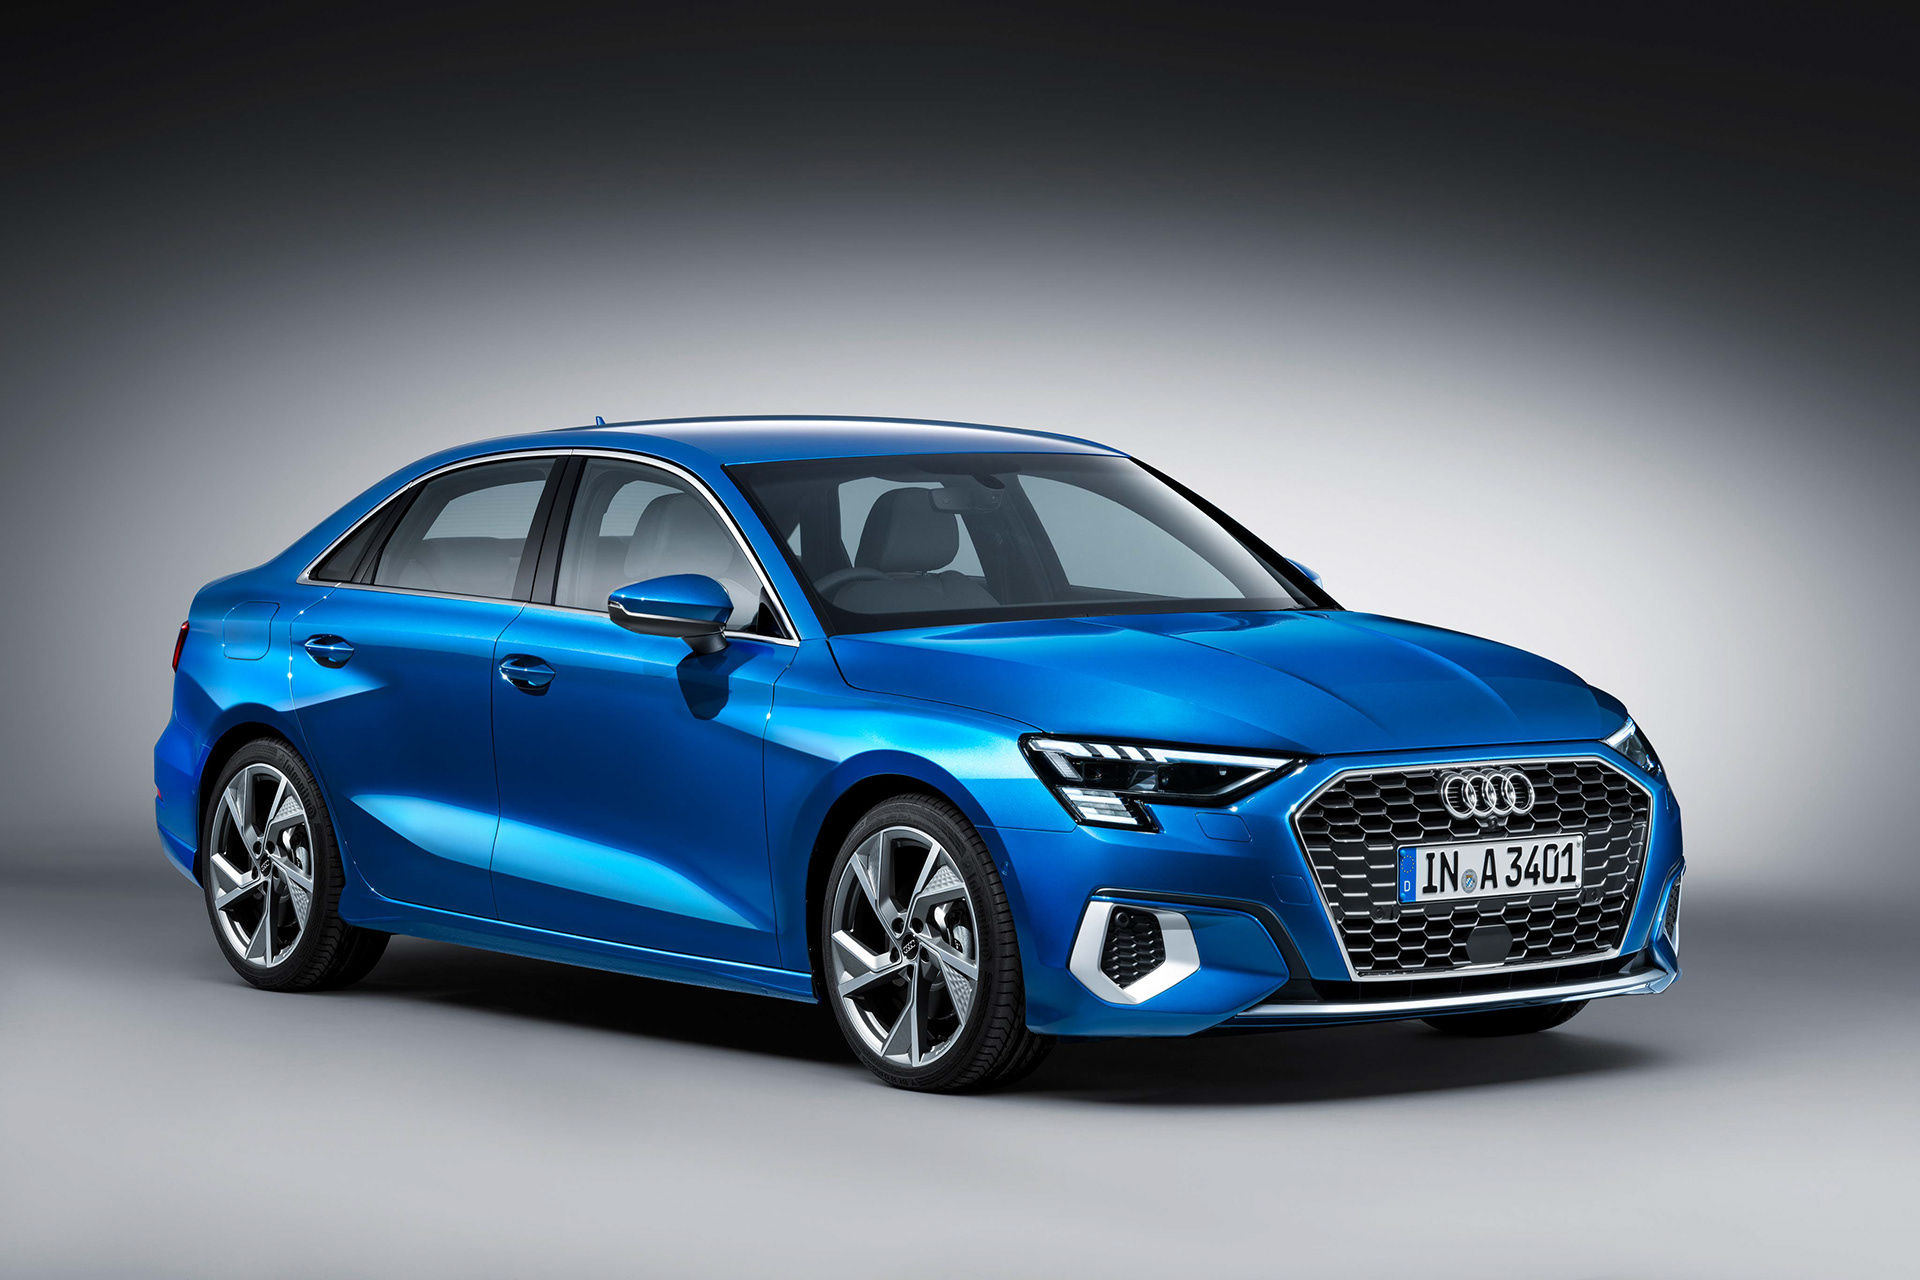 2021 Audi A3 Sedan Will Look Sporty Is Begging For The Rs3 Treatment Autoevolution